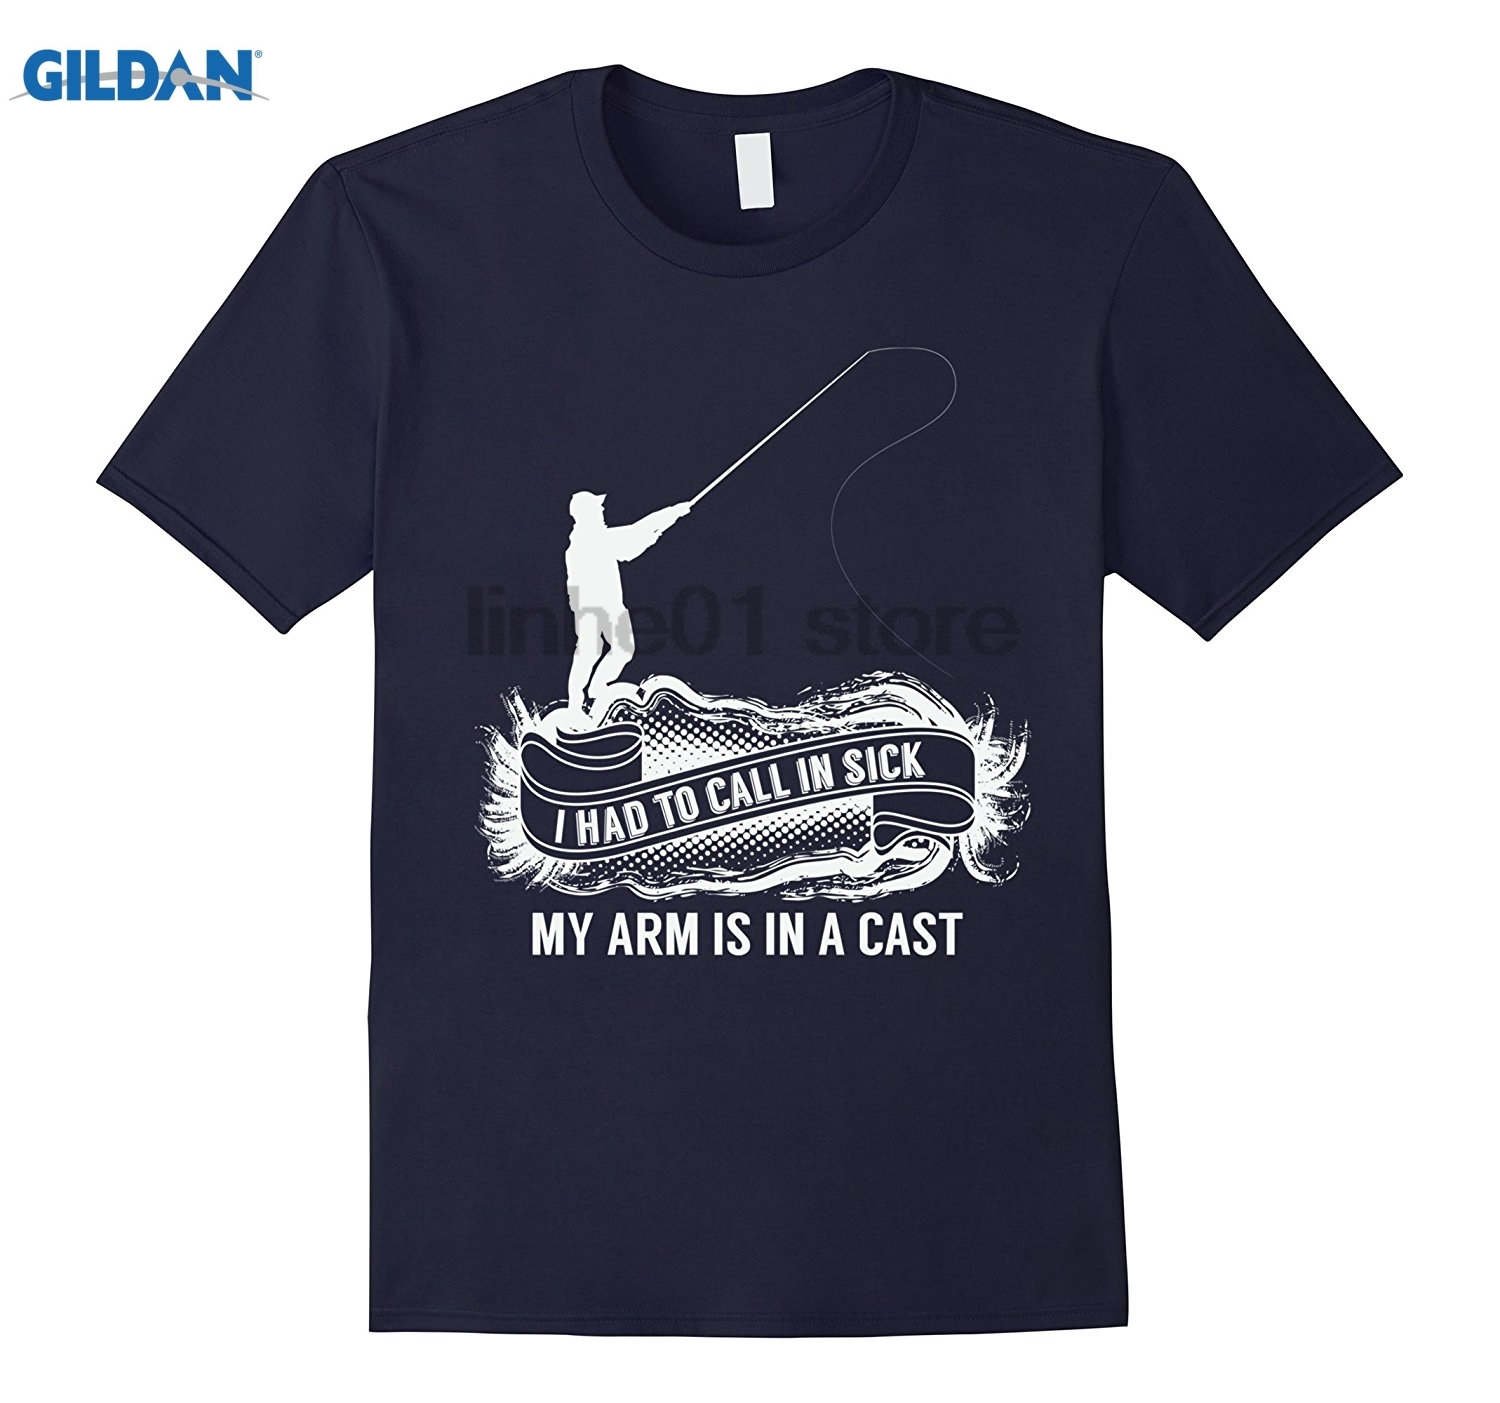 GILDAN Cool I Had To Call In Sick My Arm Is In A Cast T-Shirt Mothers Day Ms. T-shirt